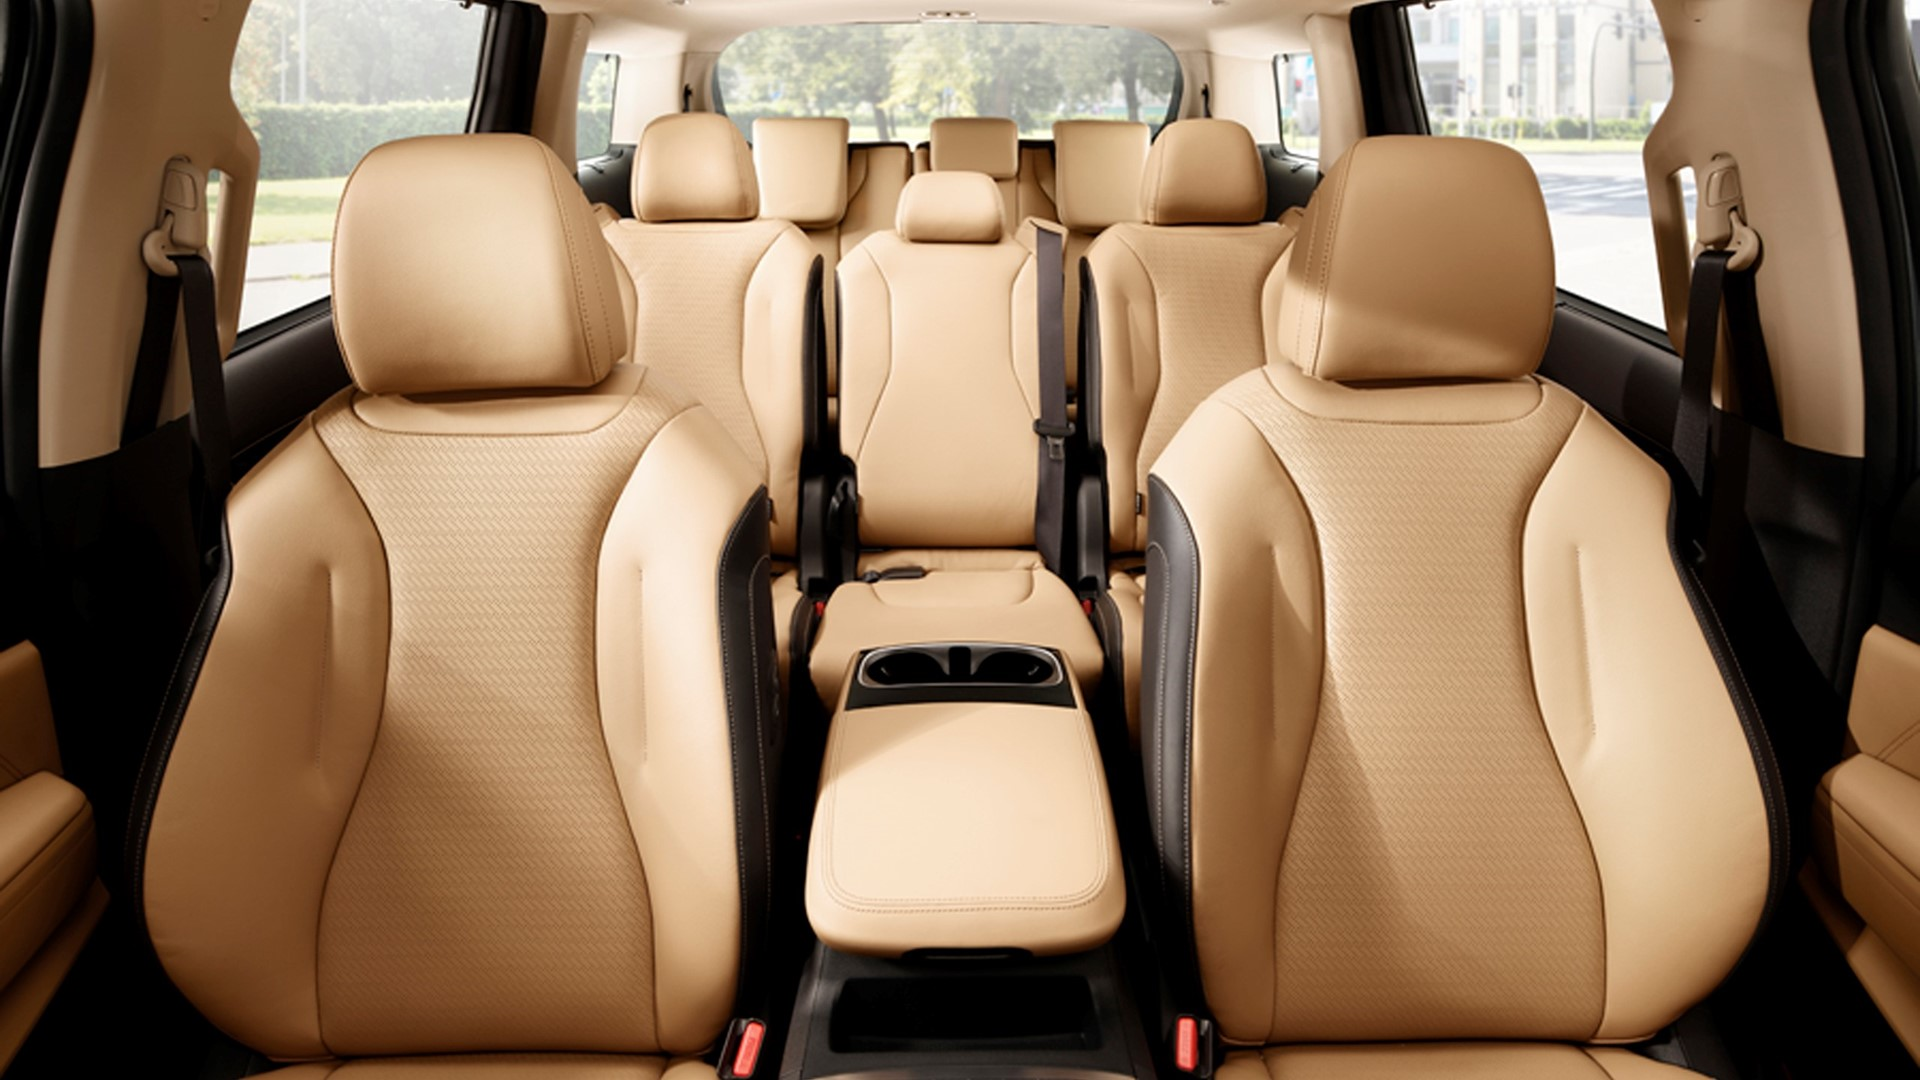 Kia introduces all-new Carnival, offering unrivalled style, space and comfort - Image 3